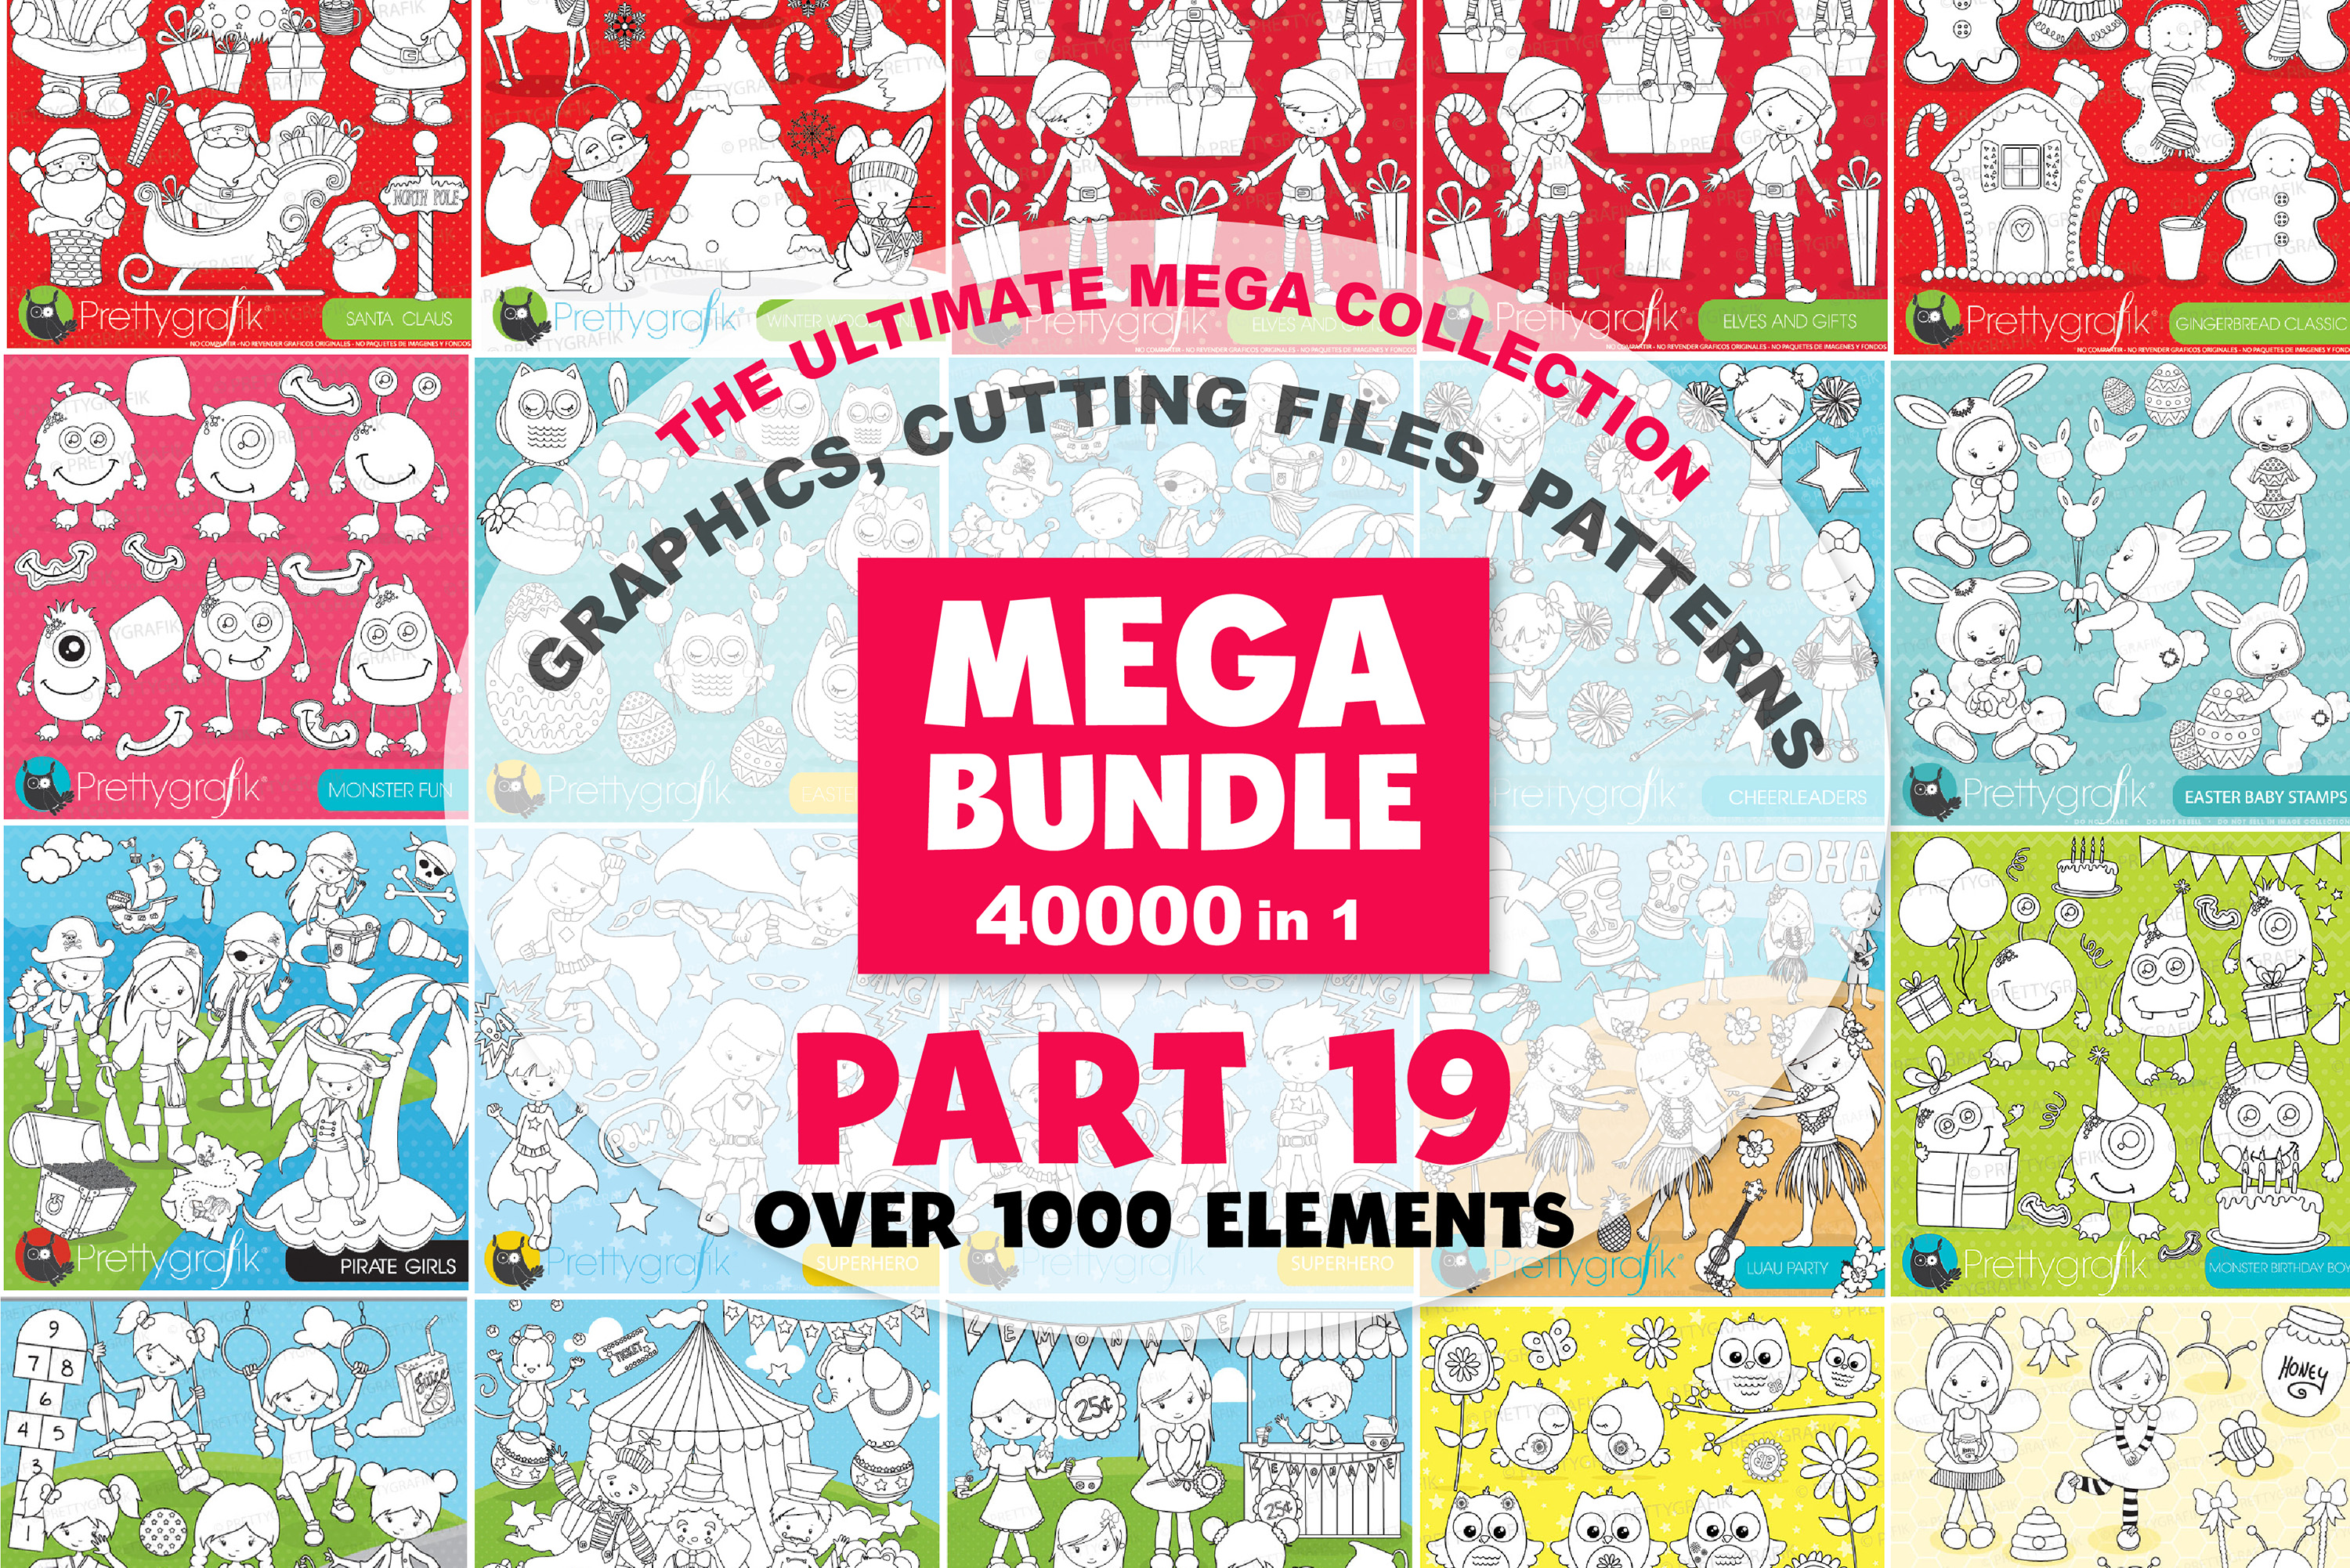 MEGA BUNDLE PART19 - 40000 in 1 Full Collection example image 1